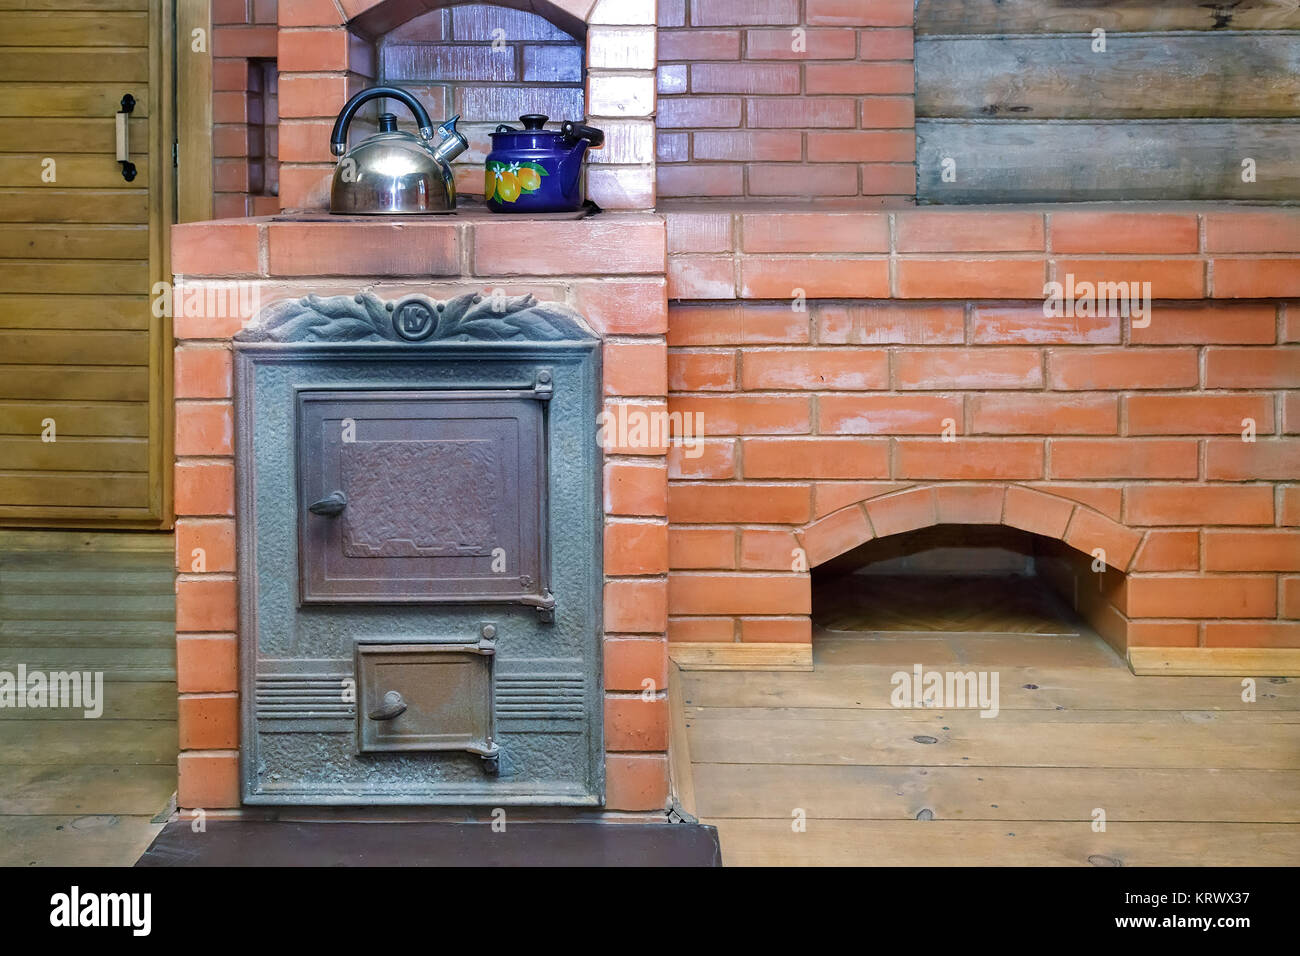 Furnaces made of bricks for a bath in Russian traditions